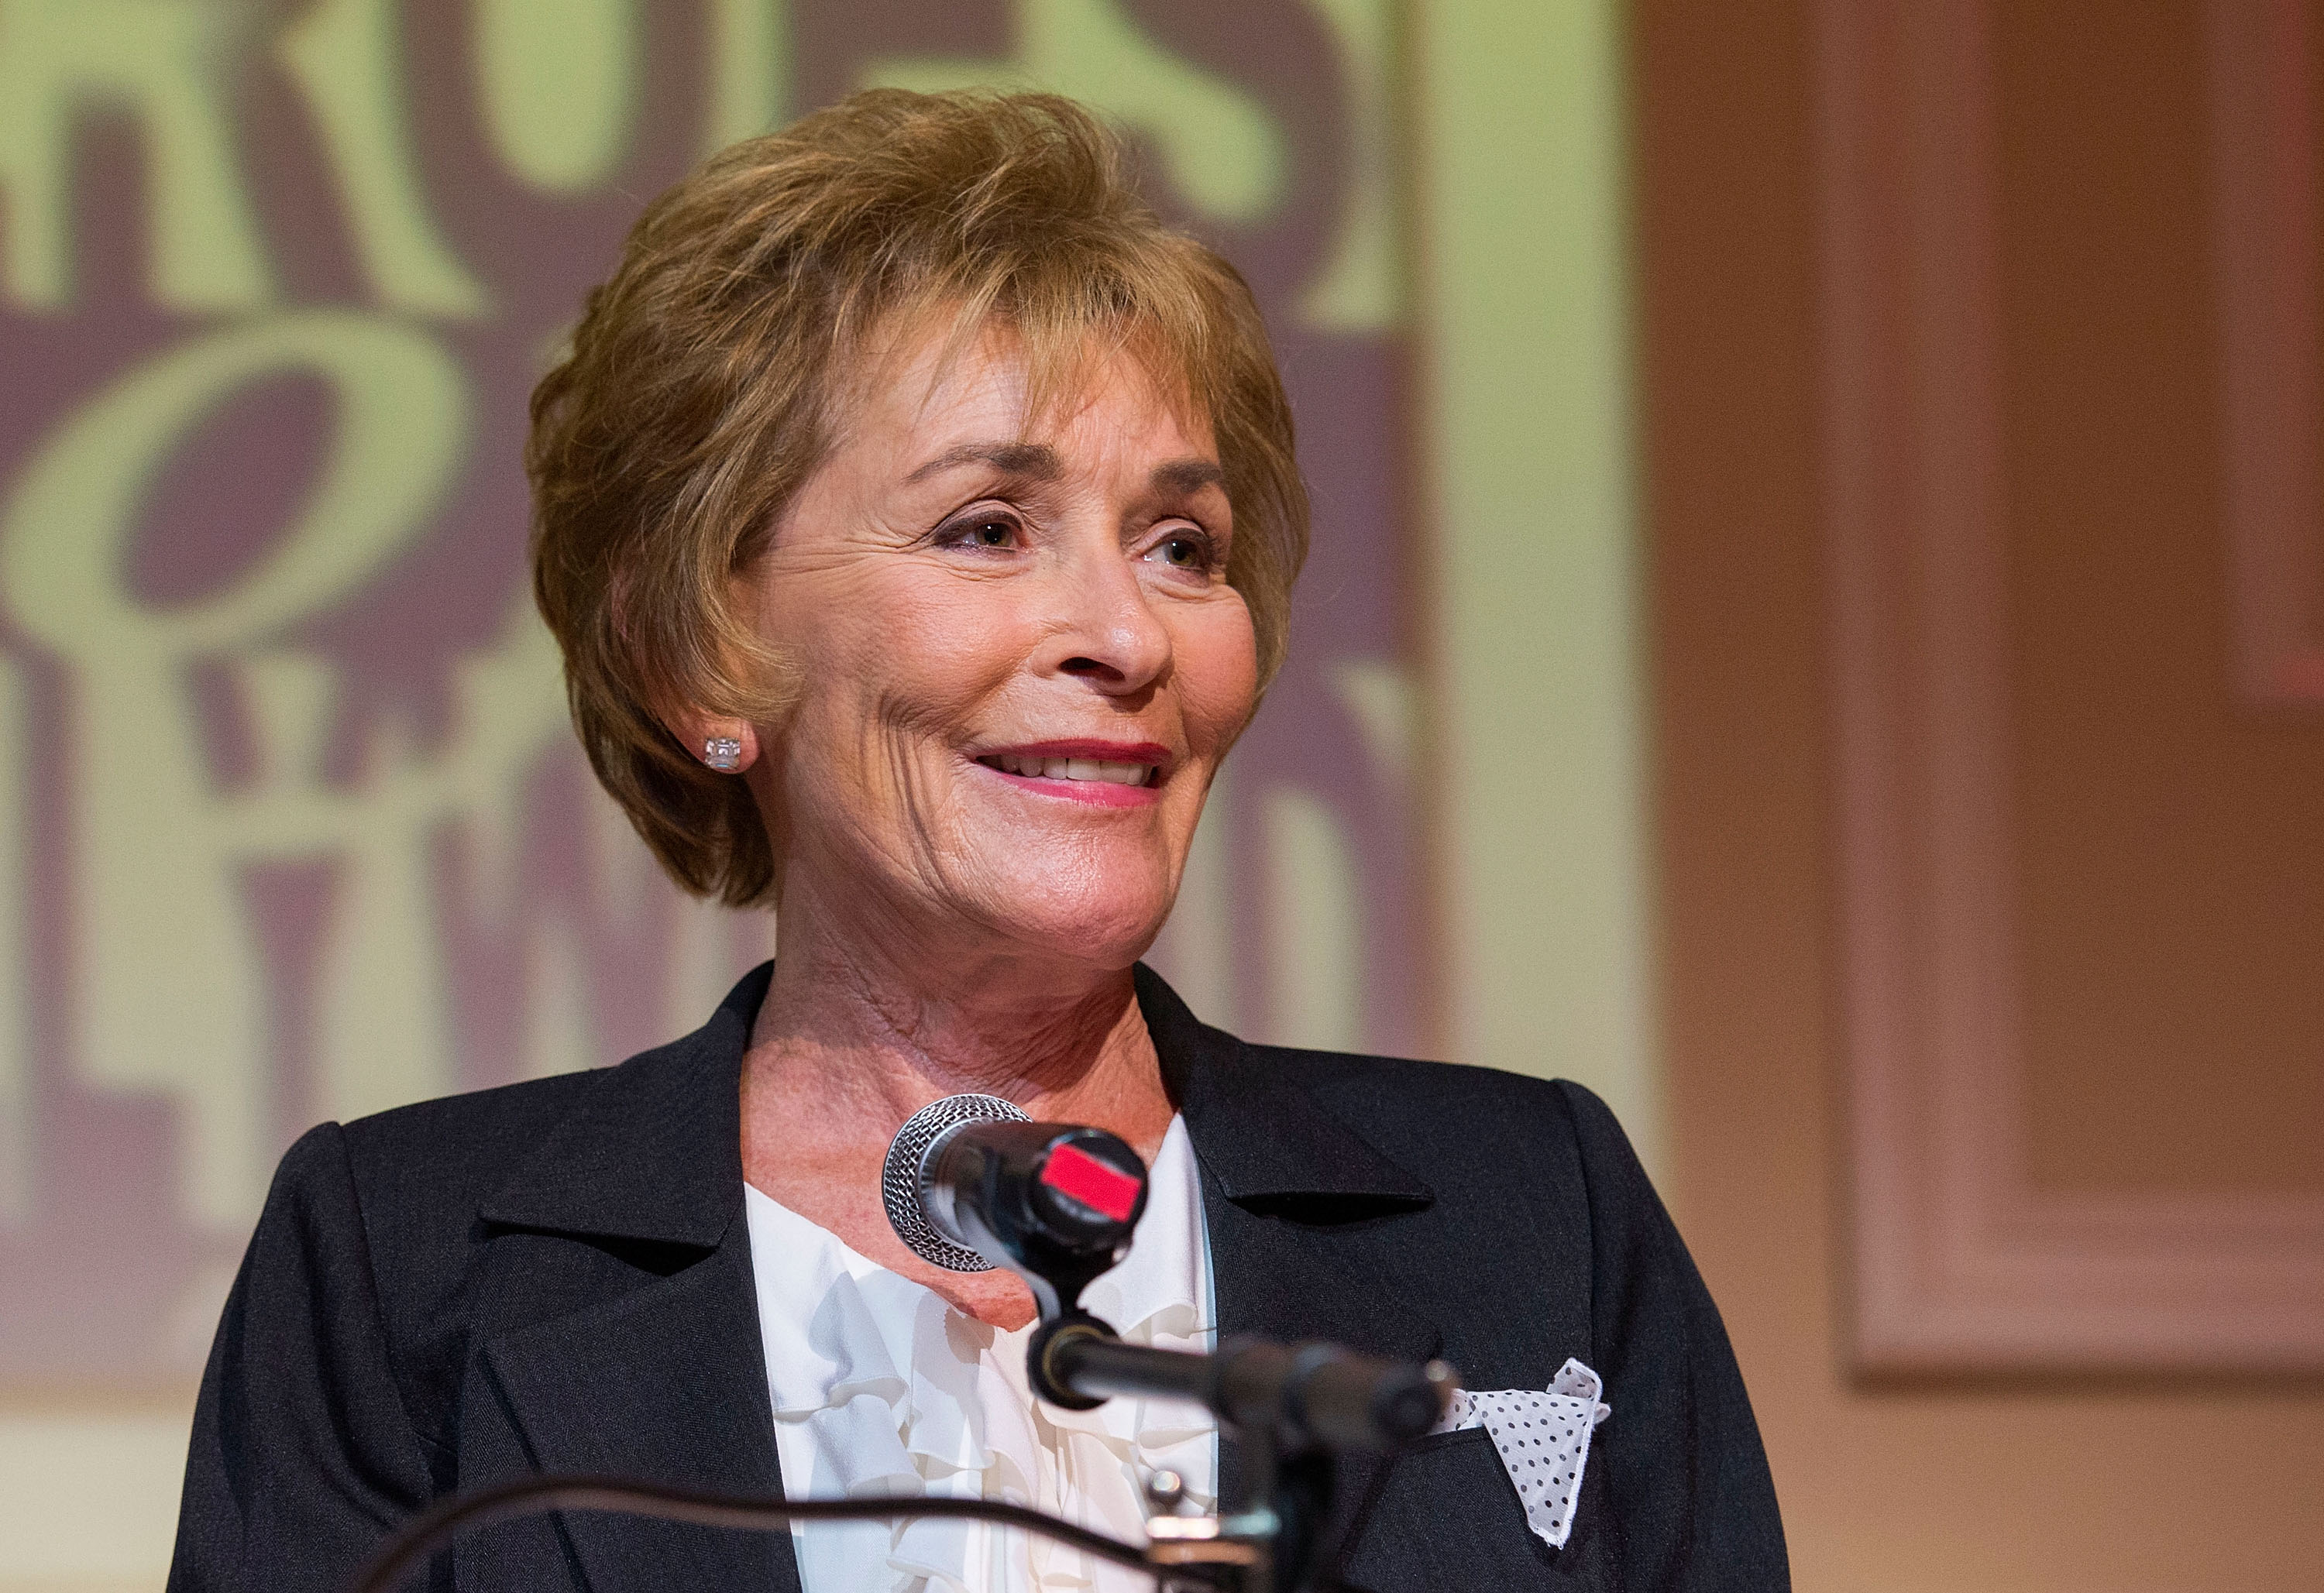 Judge Judy on June 5, 2014 in Hollywood, California | Source: Getty Images